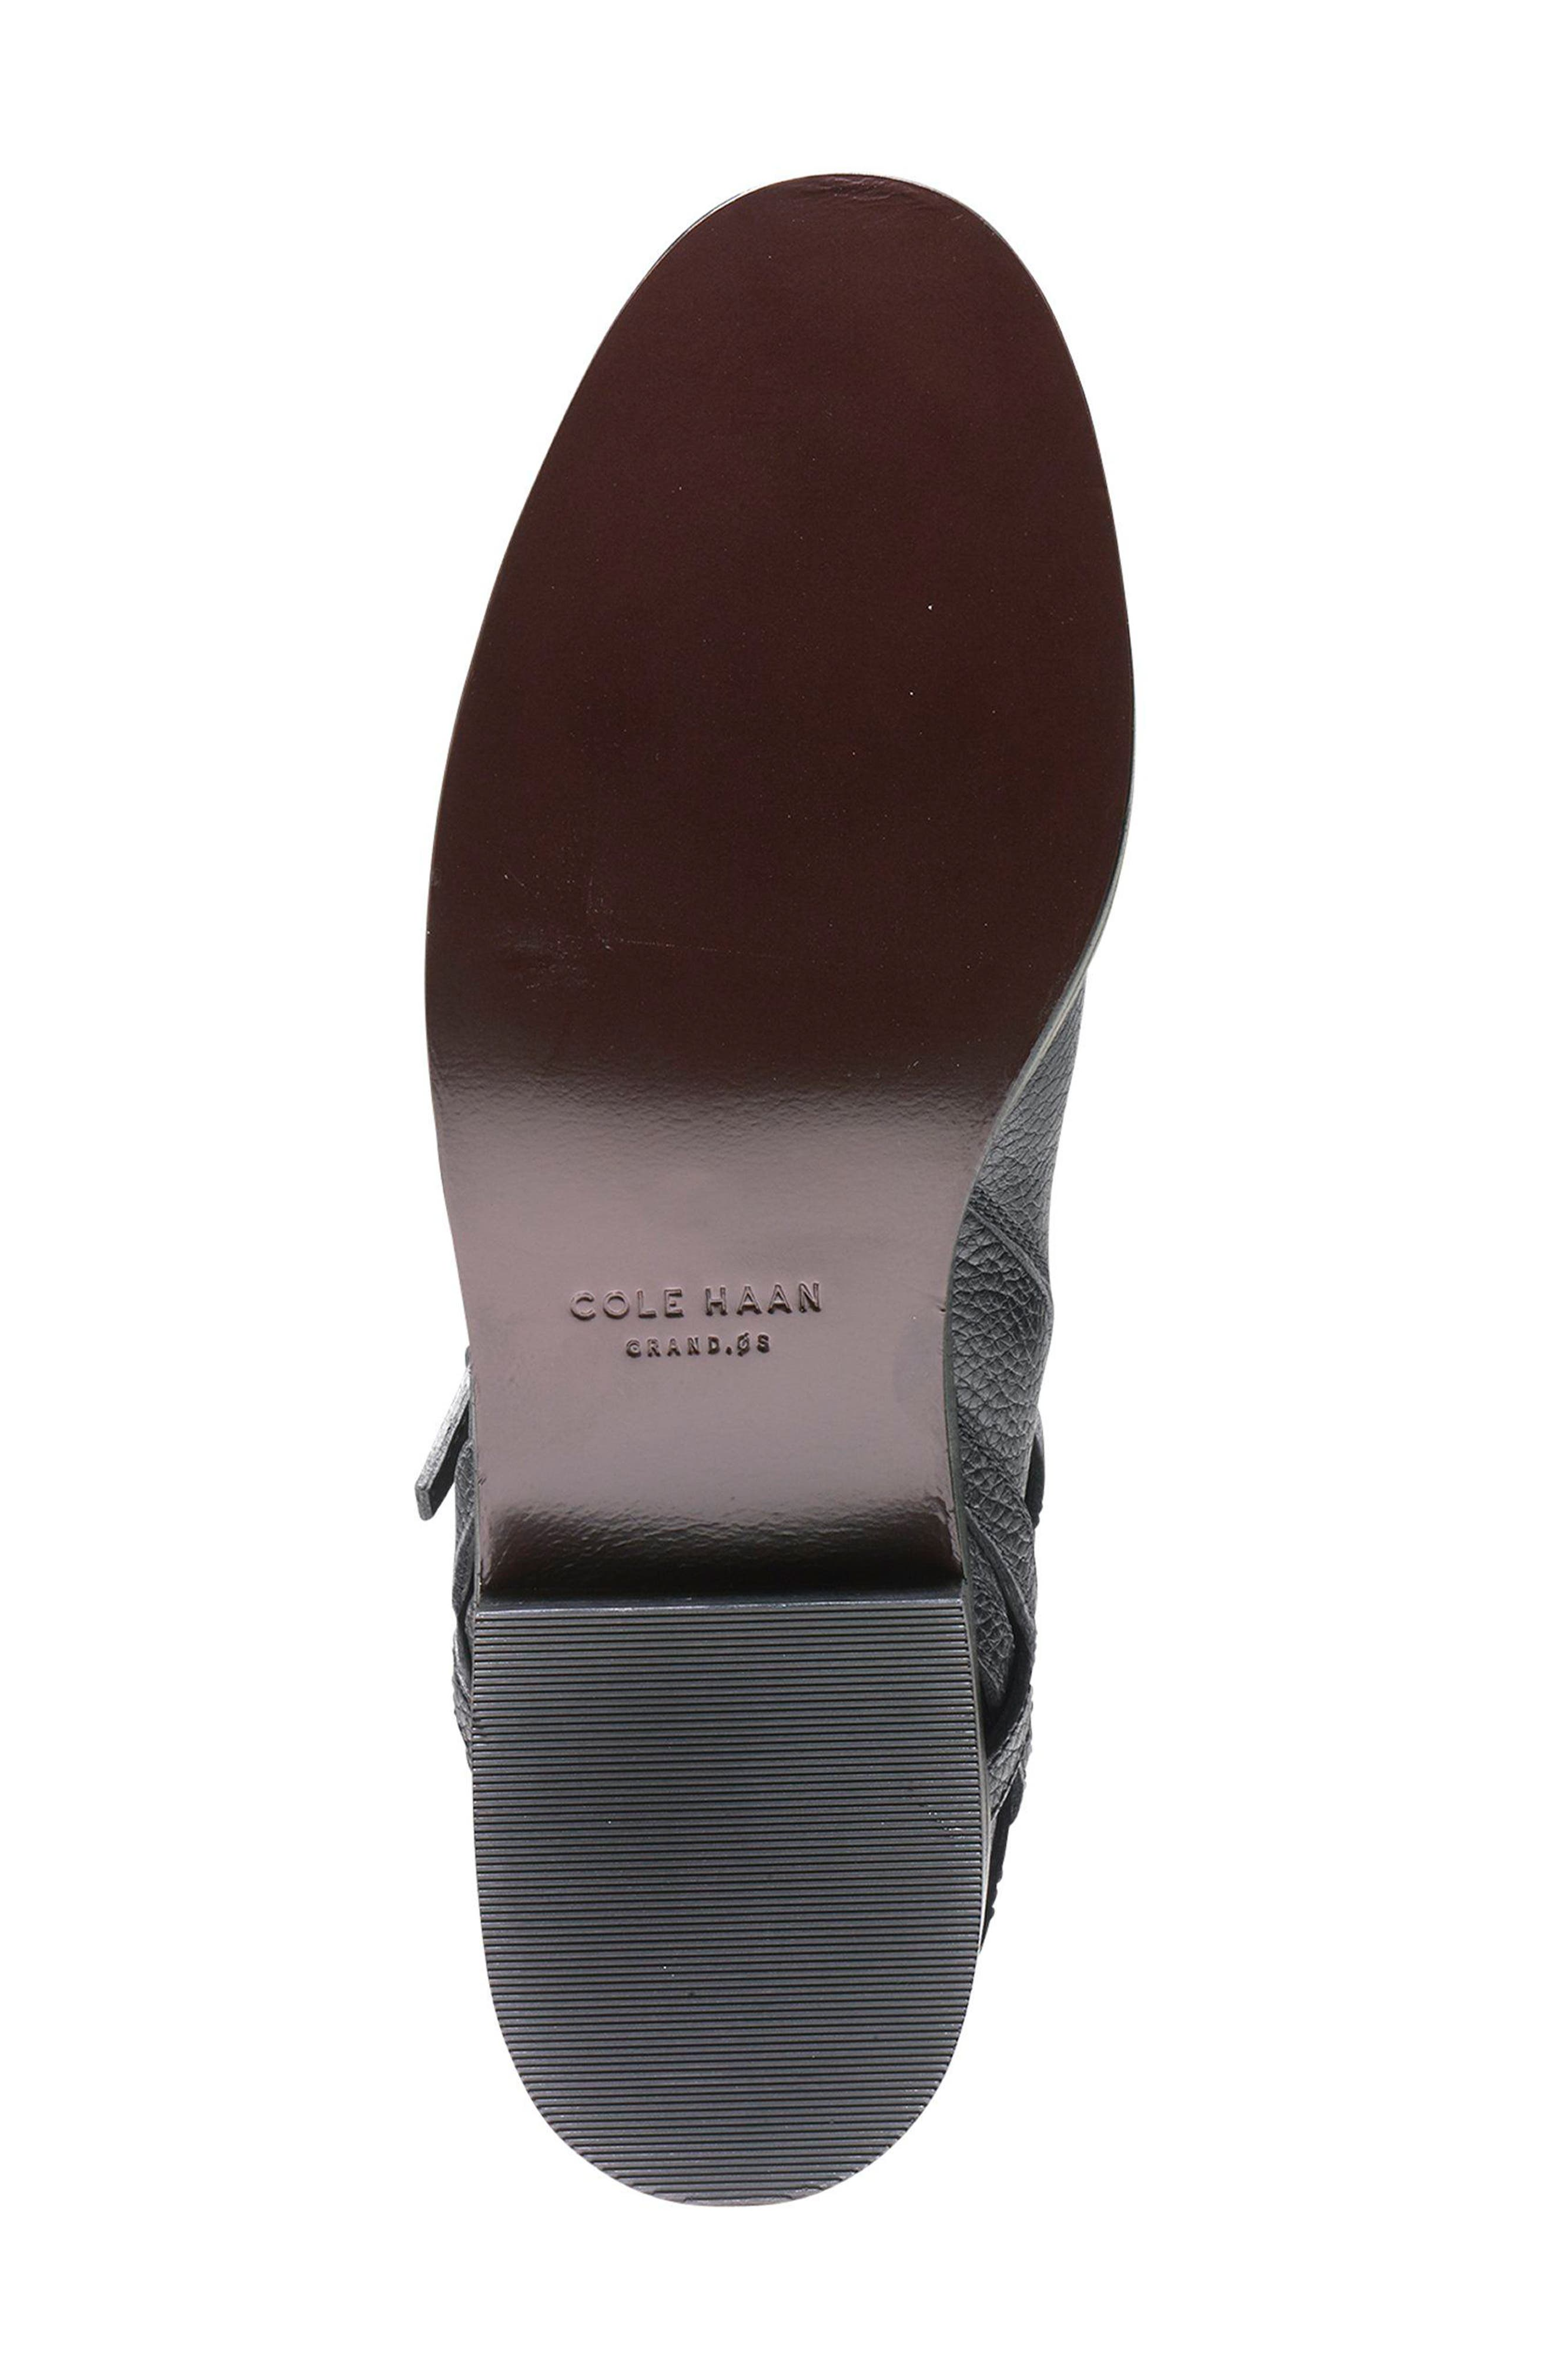 Pearlie Tall Boot,                             Alternate thumbnail 5, color,                             001